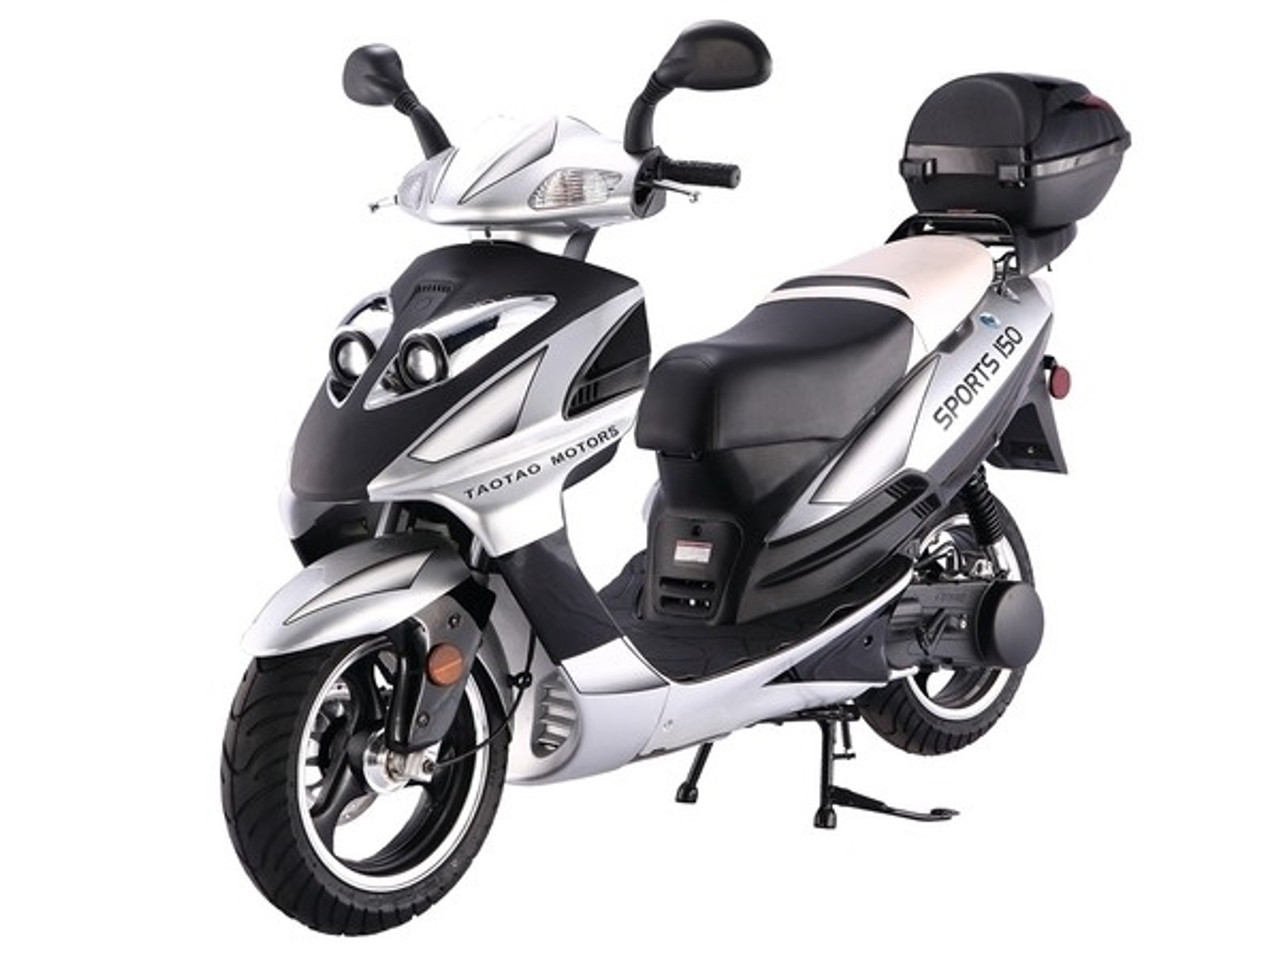 TAOTAO CY-150D Lancer 149CC Scooter - Fully Assembled